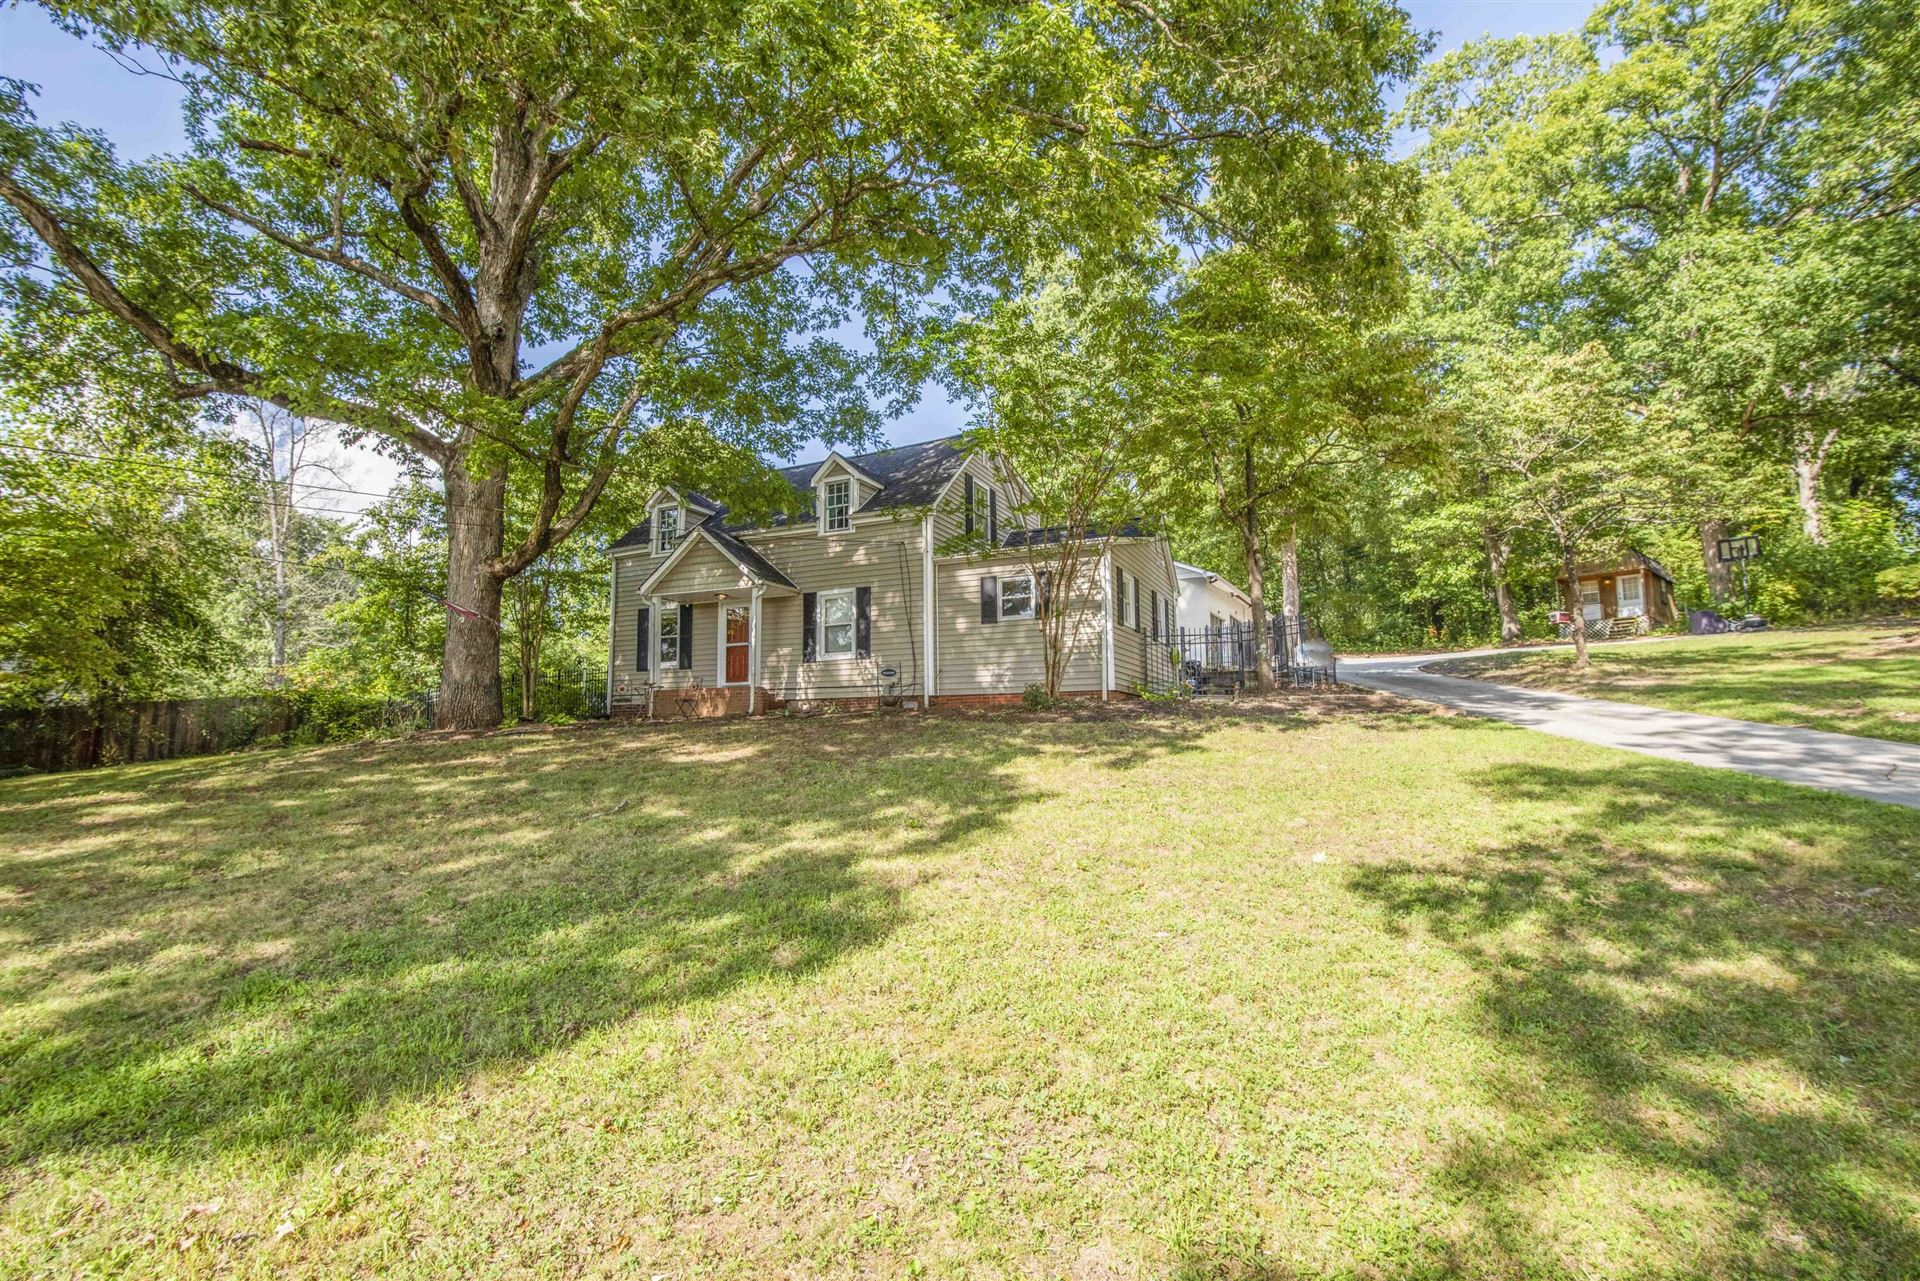 Photo of 4814 Cain Rd, Knoxville, TN 37921 (MLS # 1166976)